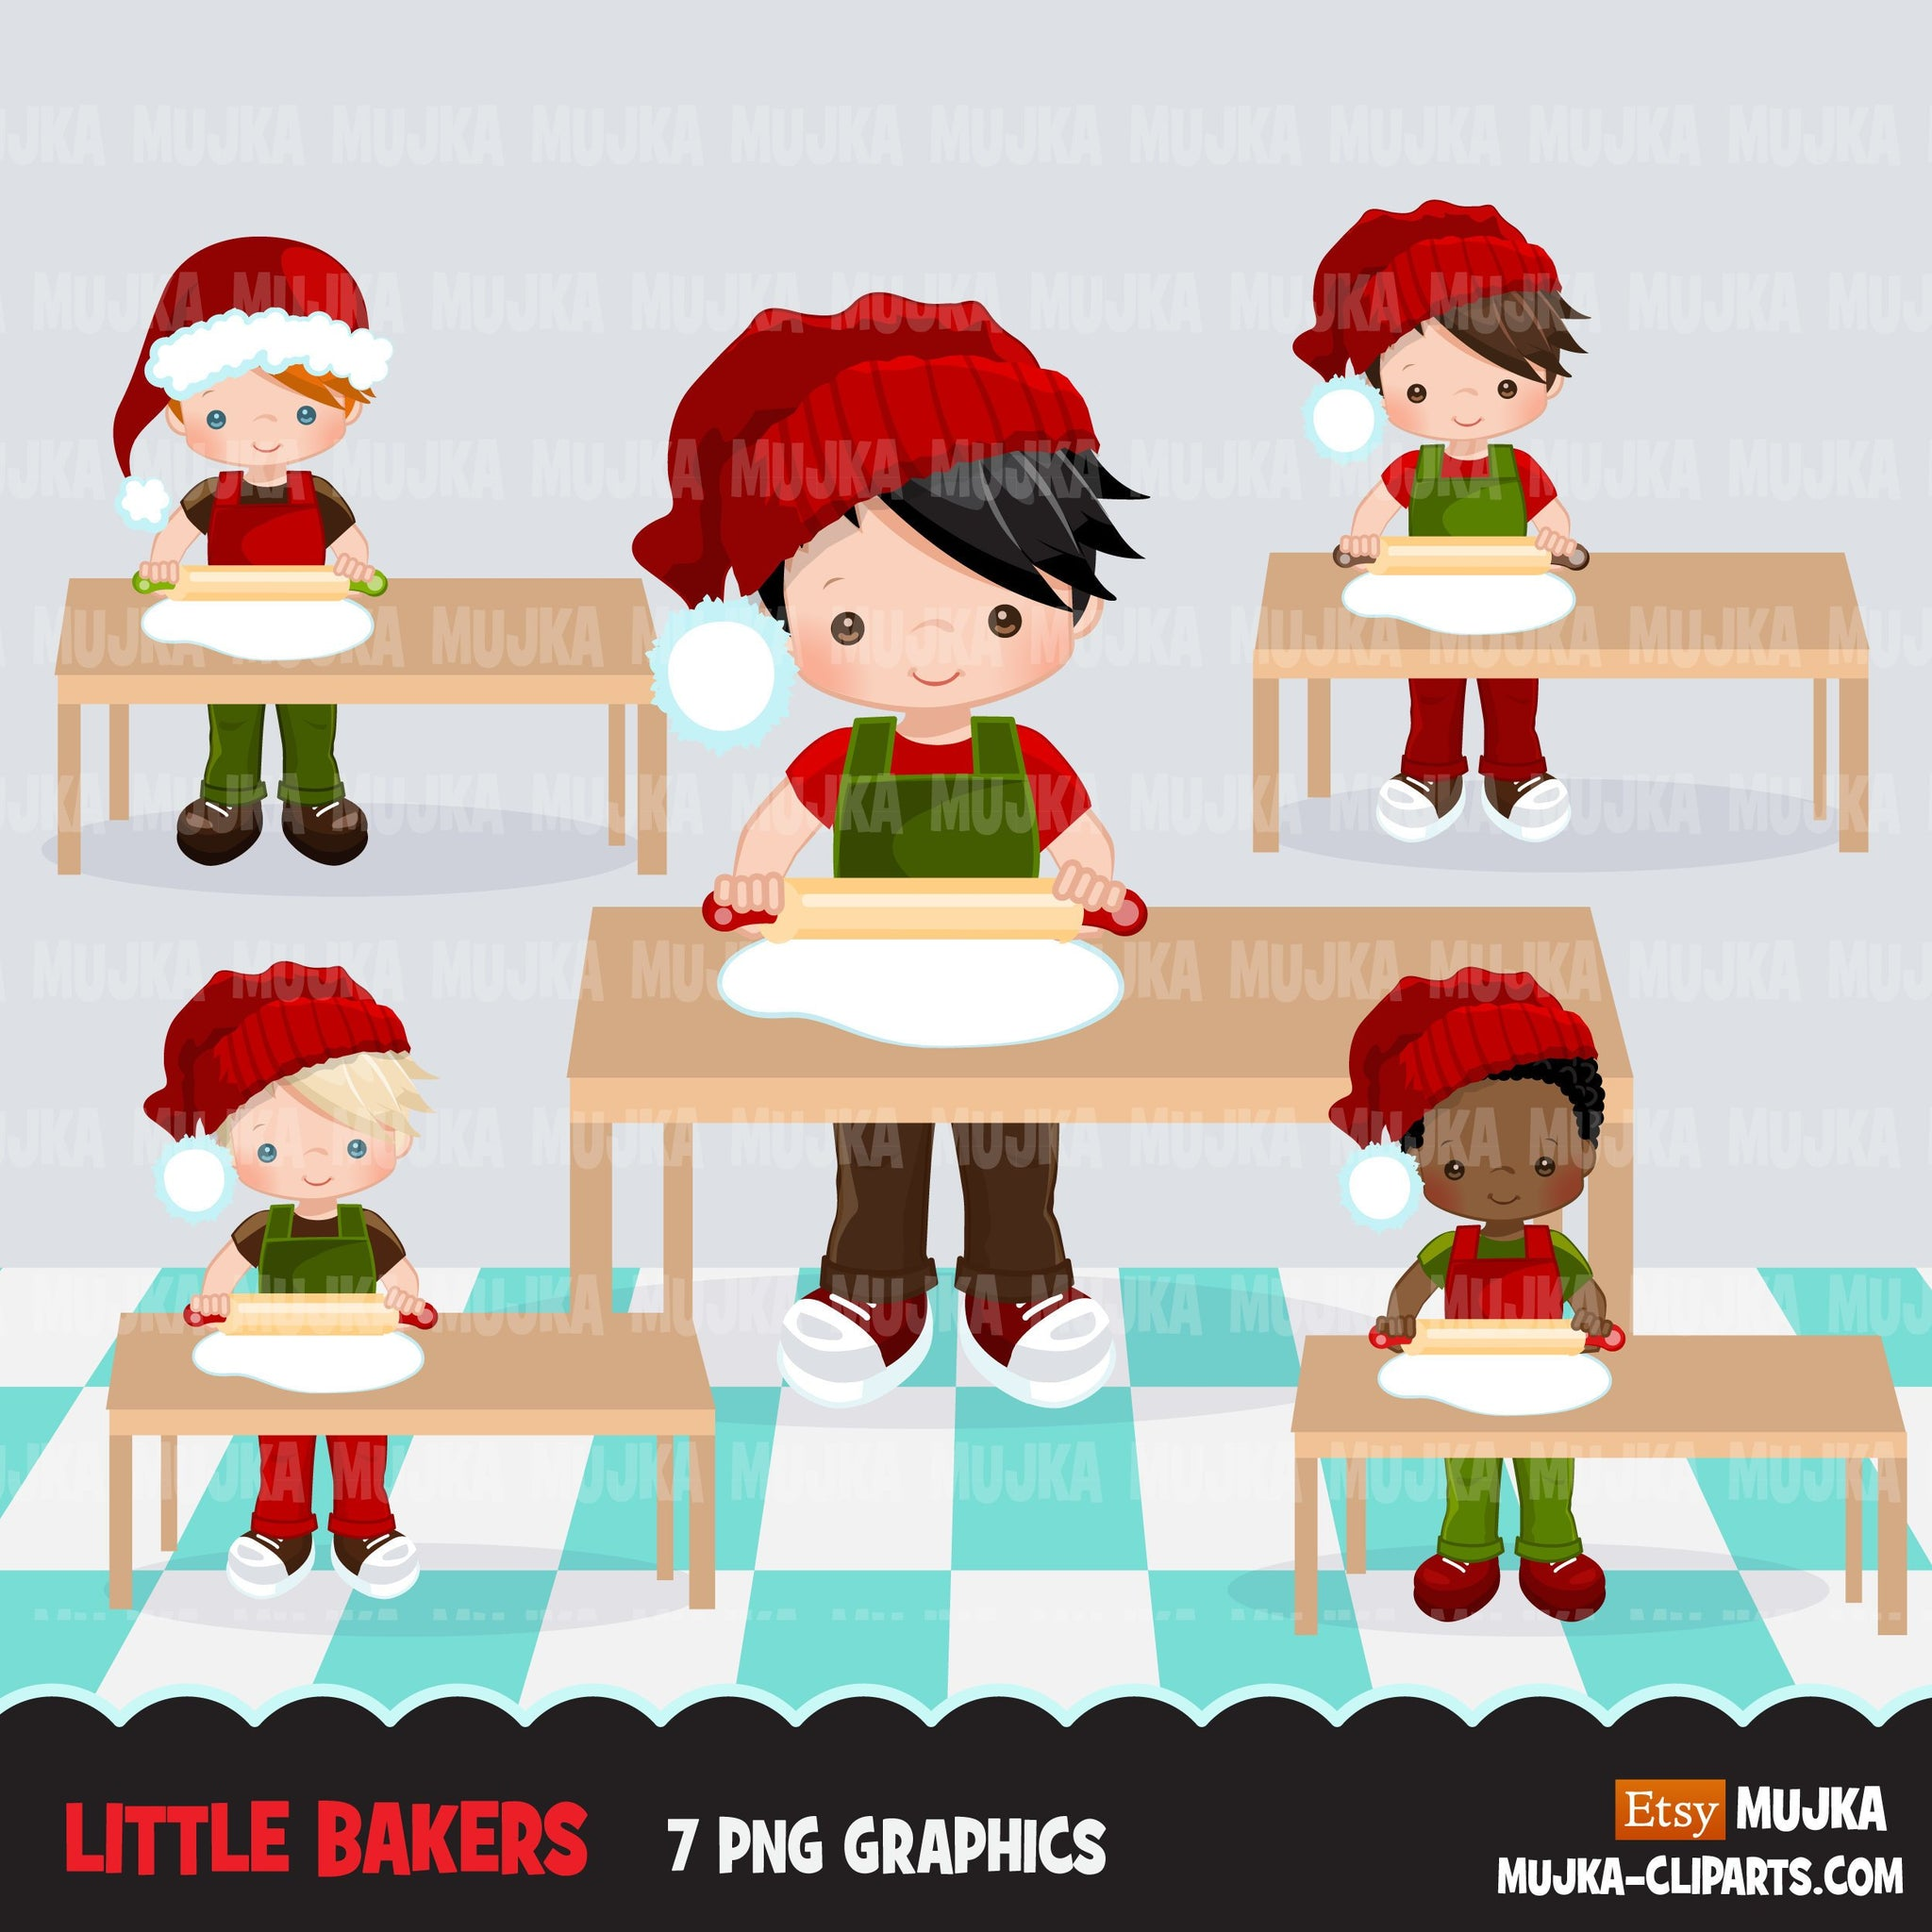 Christmas Baking Clipart, Cute baker boy characters, kitchen baking party, rollling pin, pastry chef, cookie graphics, baking fun clip art